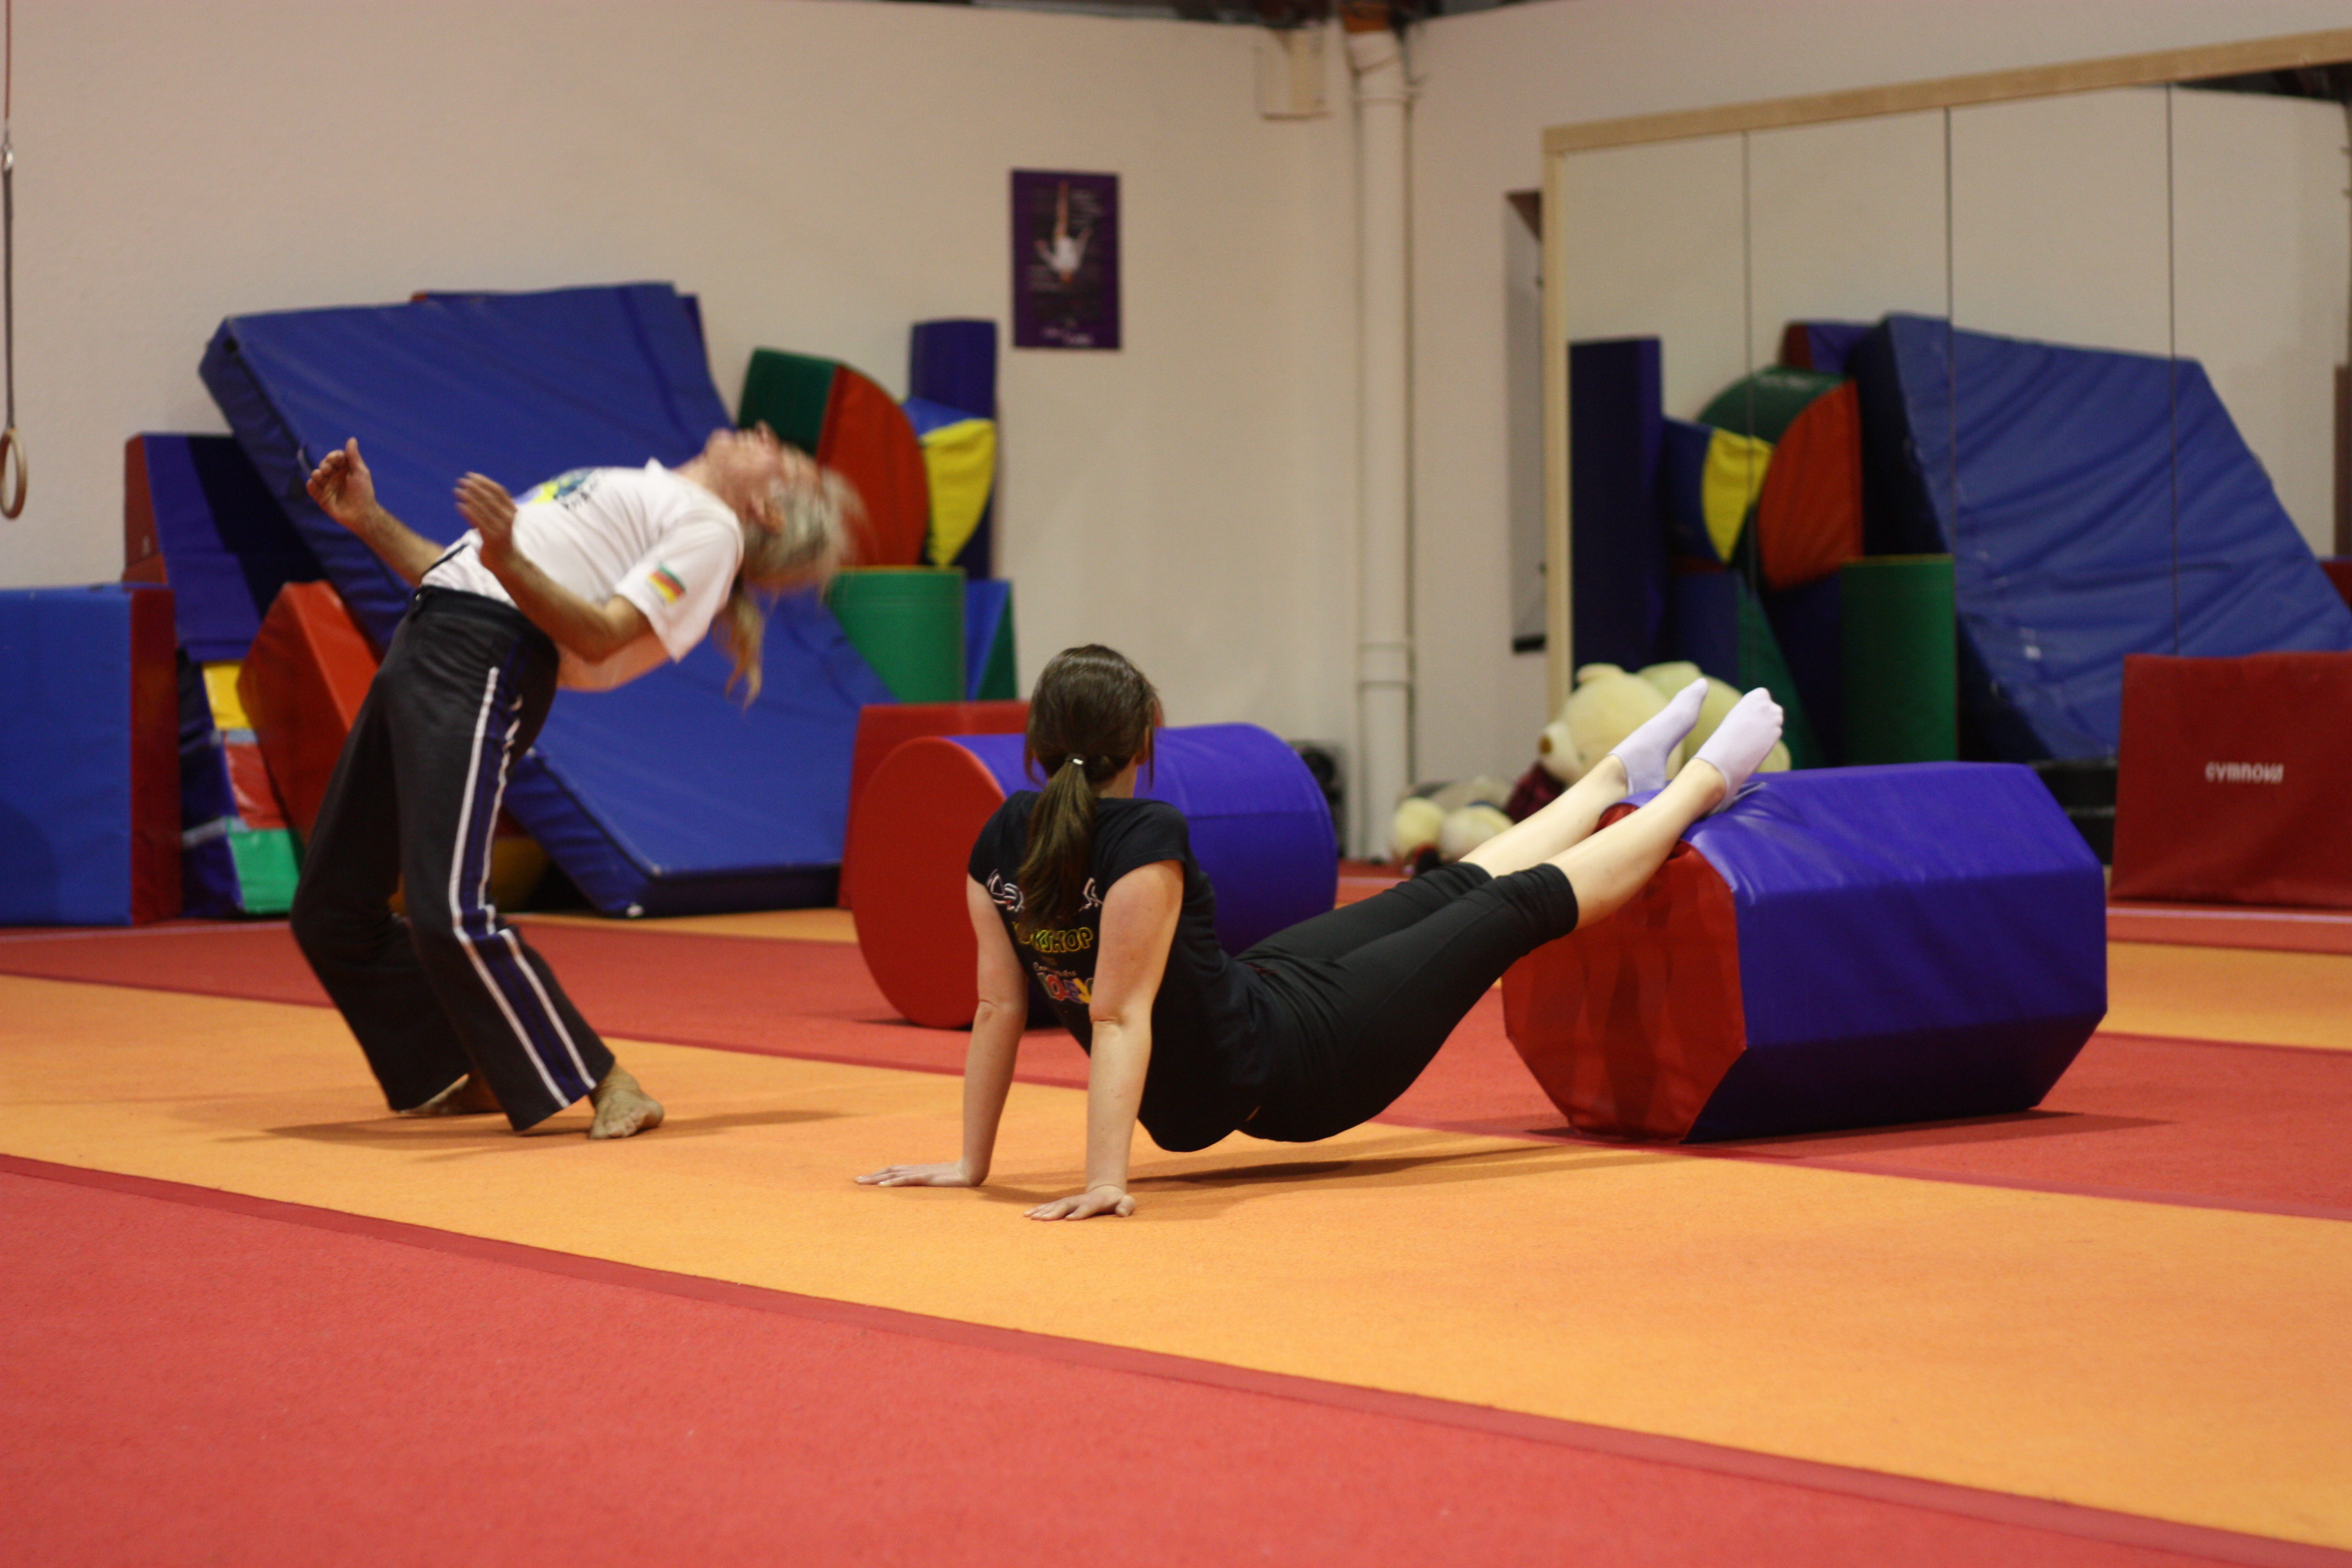 Adult Gymnastics is our newest addition to the recreational stream at ...